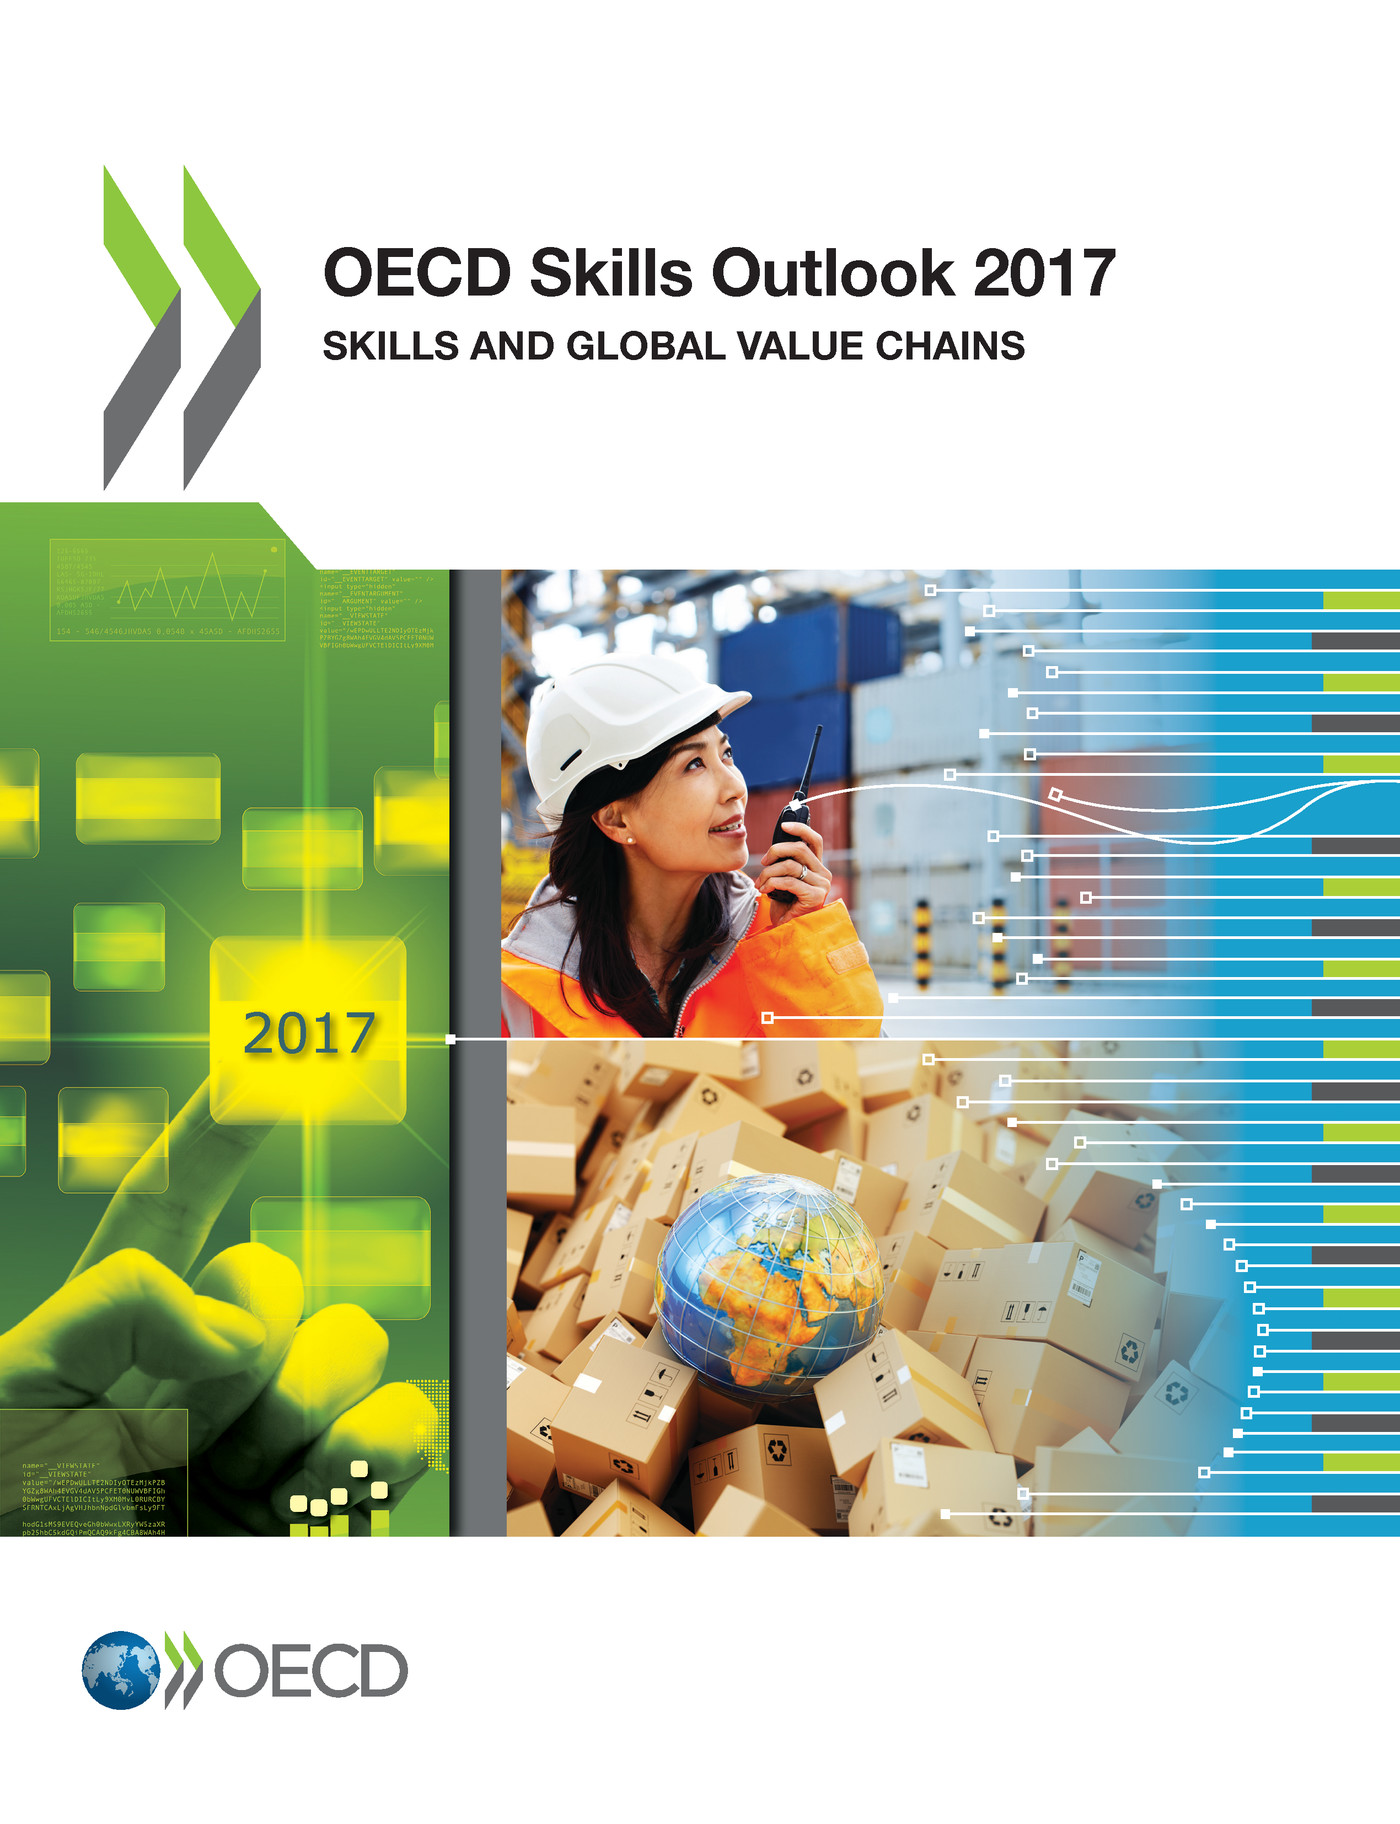 OECD Skills Outlook 2017 De  Collectif - OCDE / OECD